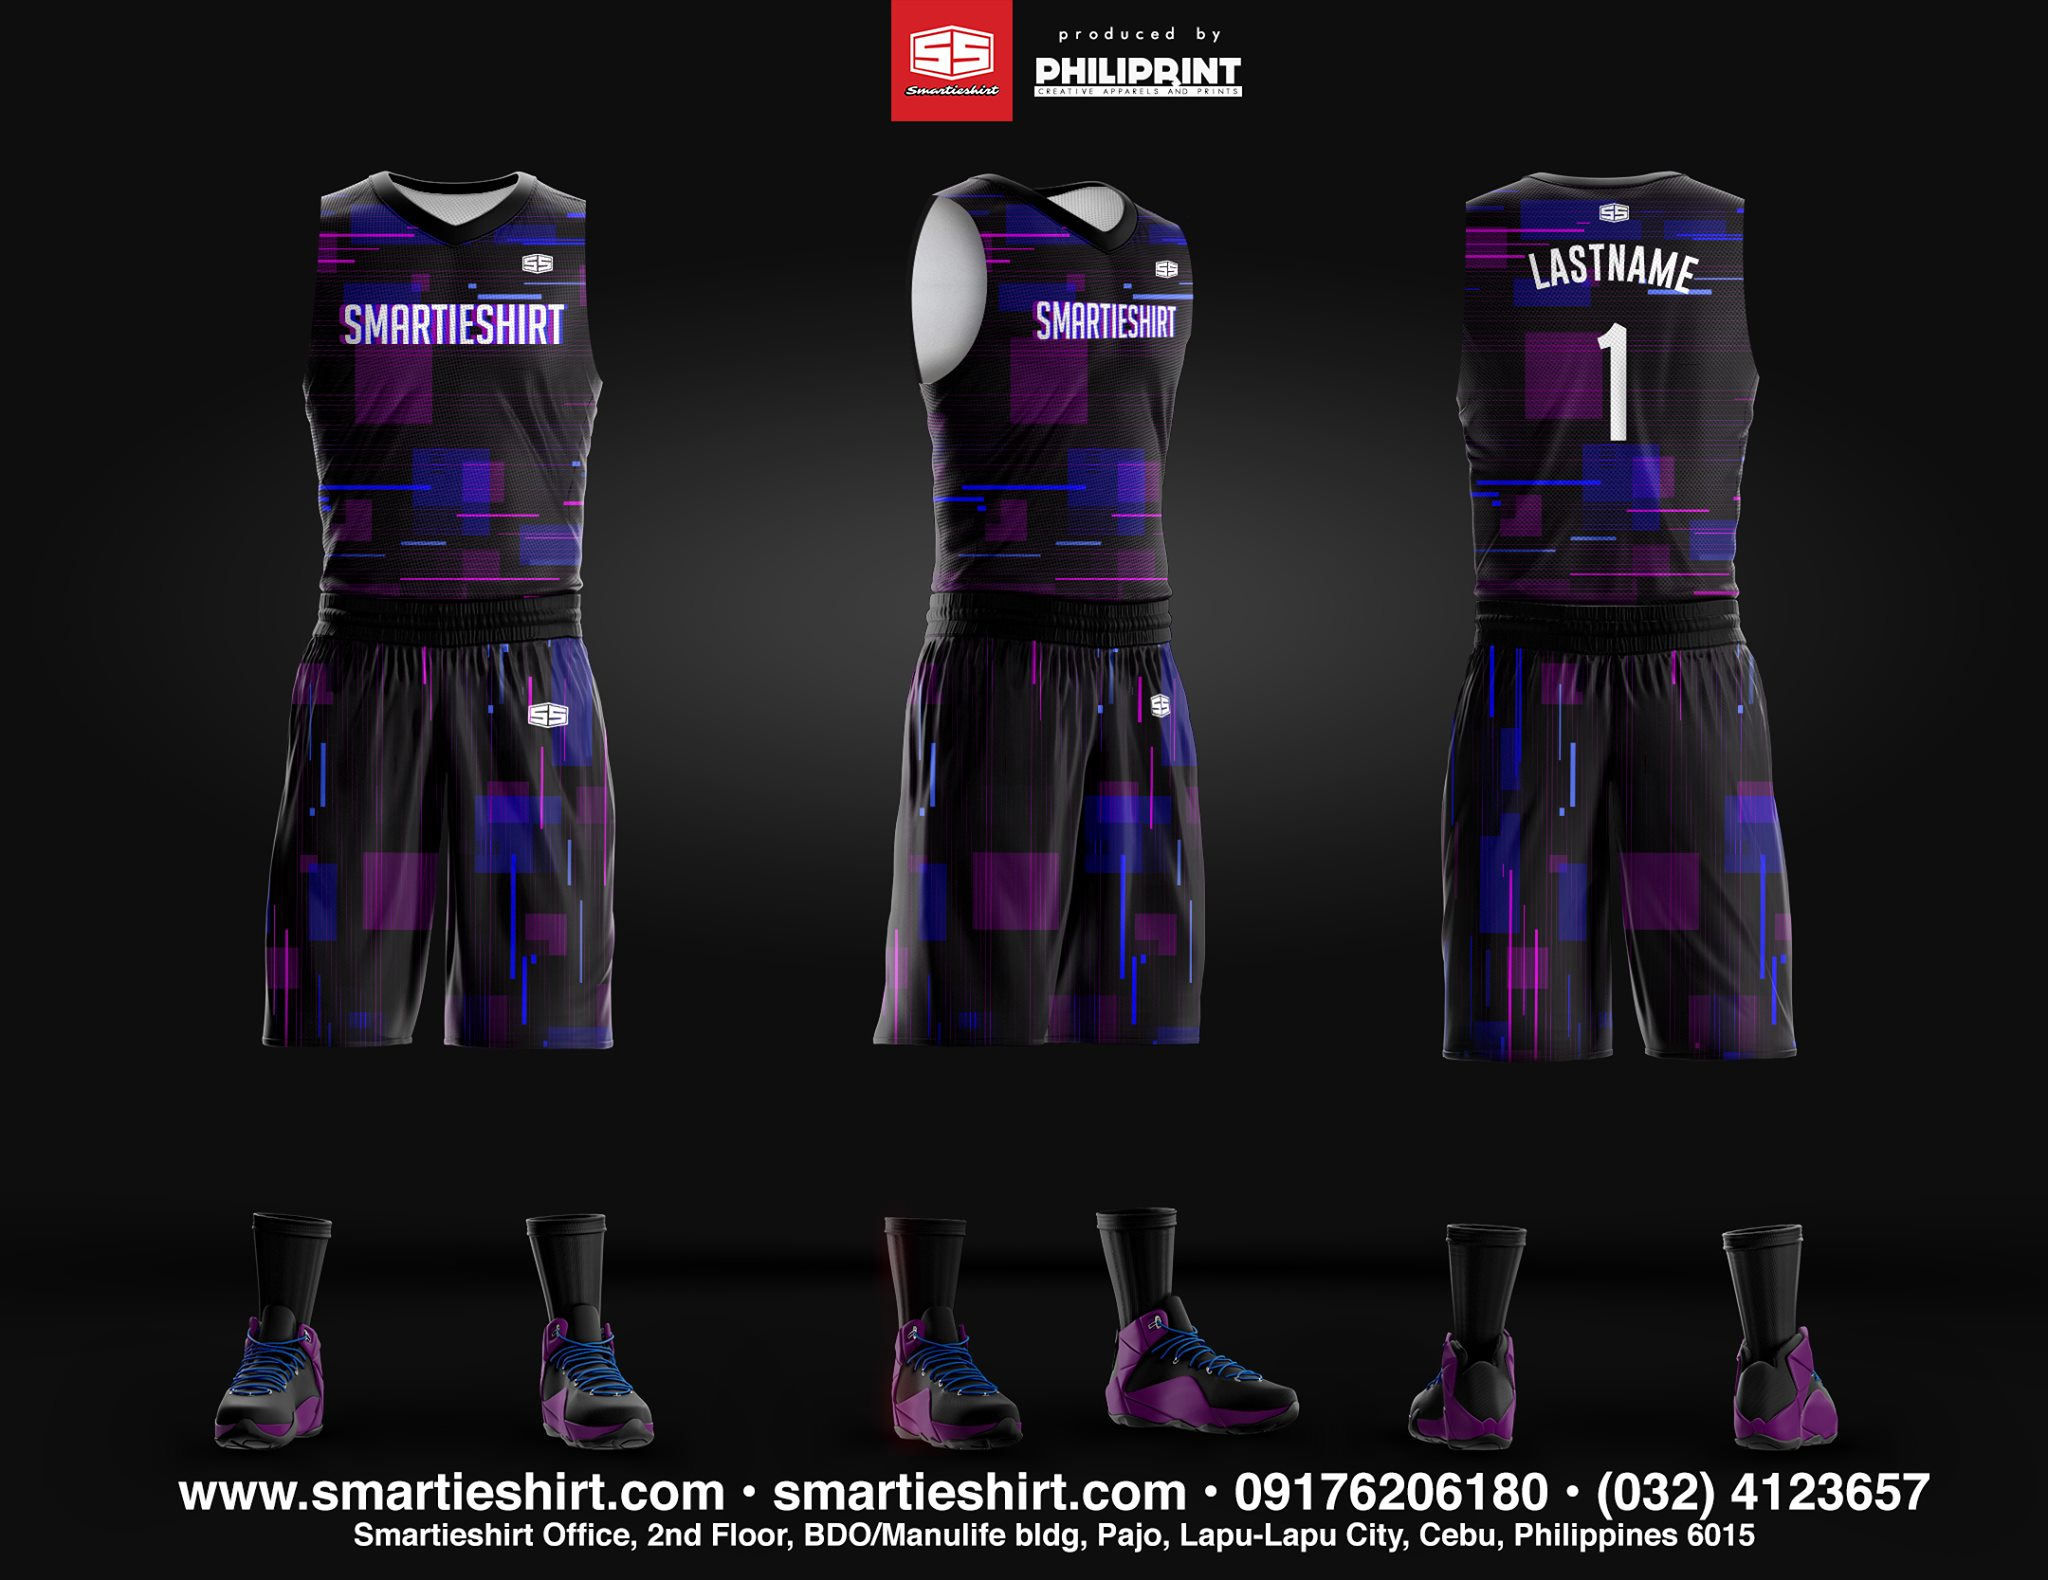 Philiprint Basketball Jersey Full Sublimation Smartieshirt